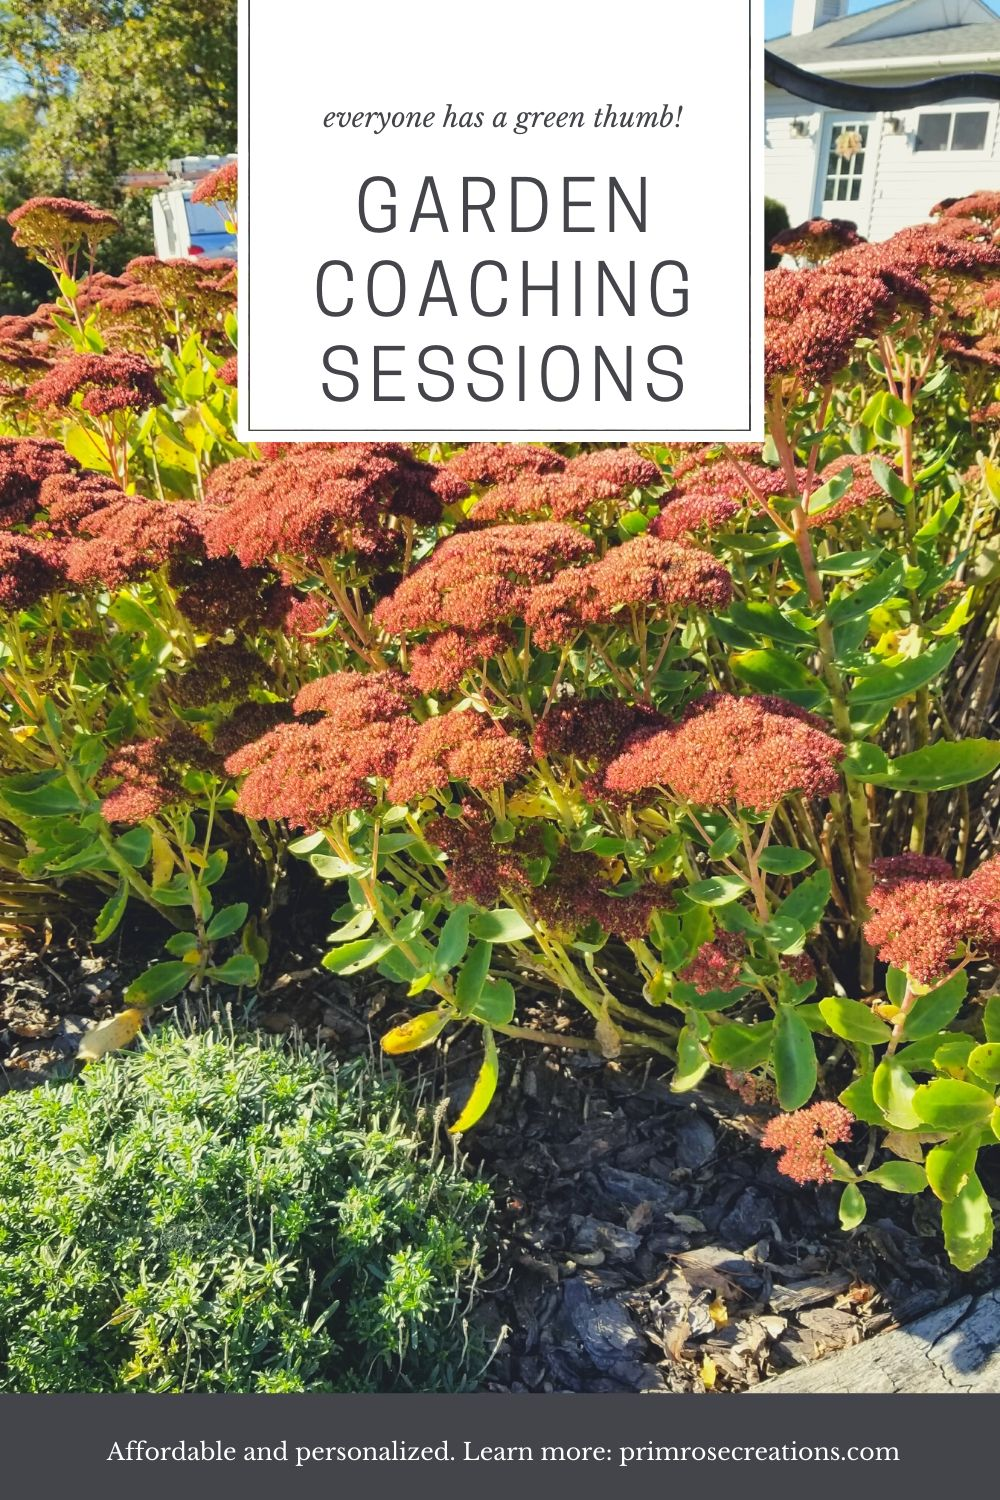 Garden coaching by Primrose Creations is conducted in the Amsterdam, NY area and include services such as in-person garden lessons and greenhouse visits.